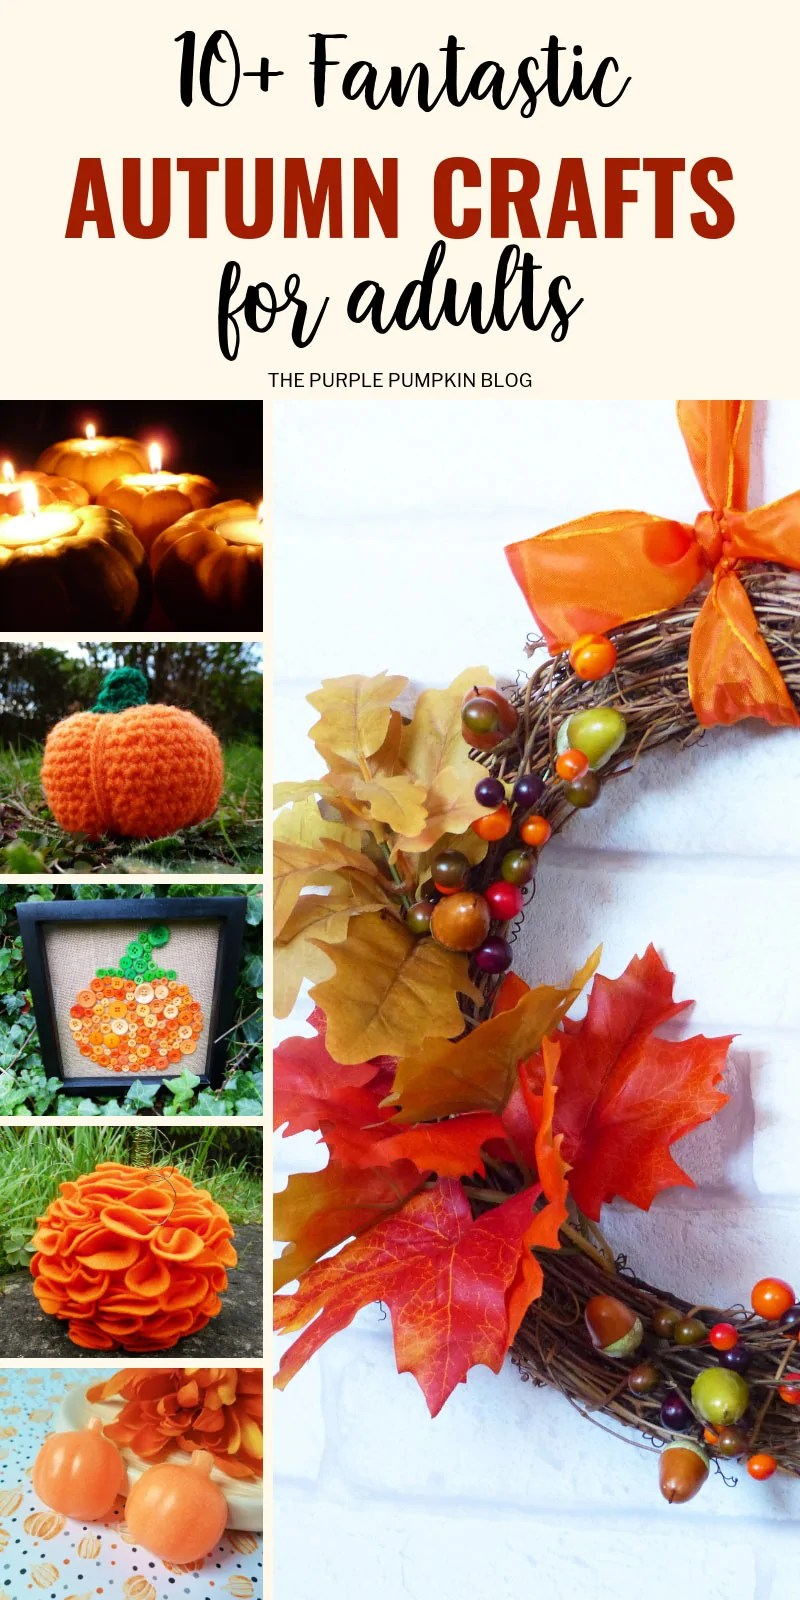 10+ Fantastic Autumn Crafts for adults